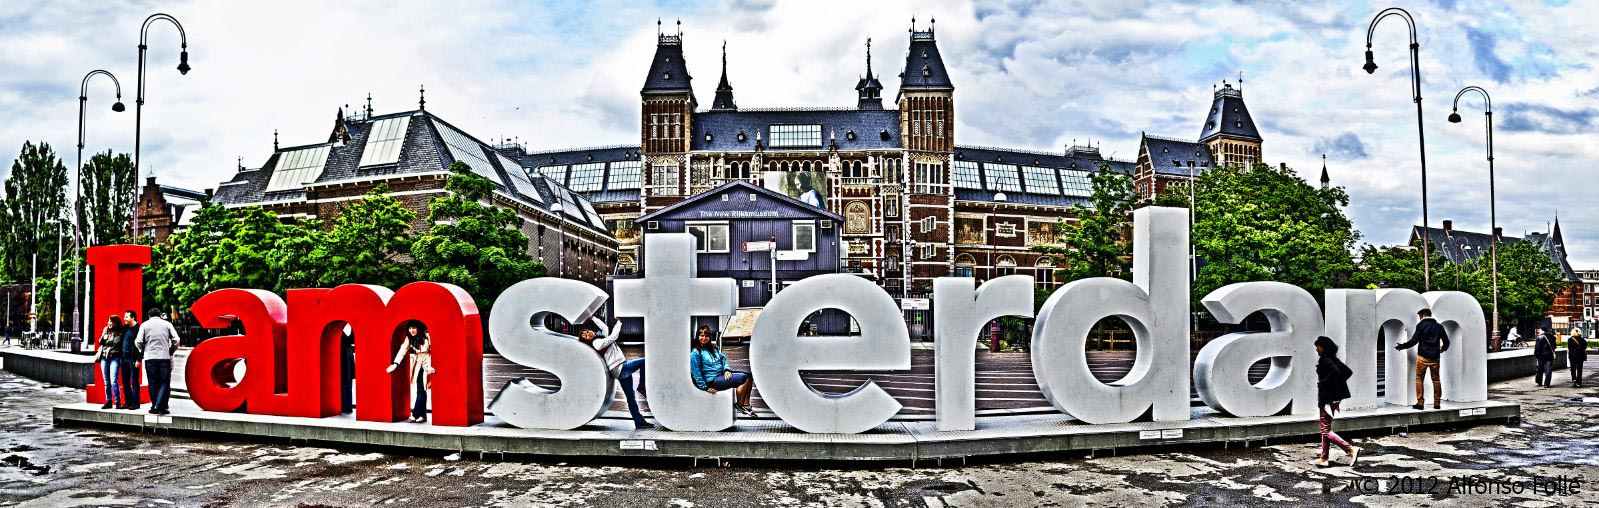 Amsterdam, city of freedom